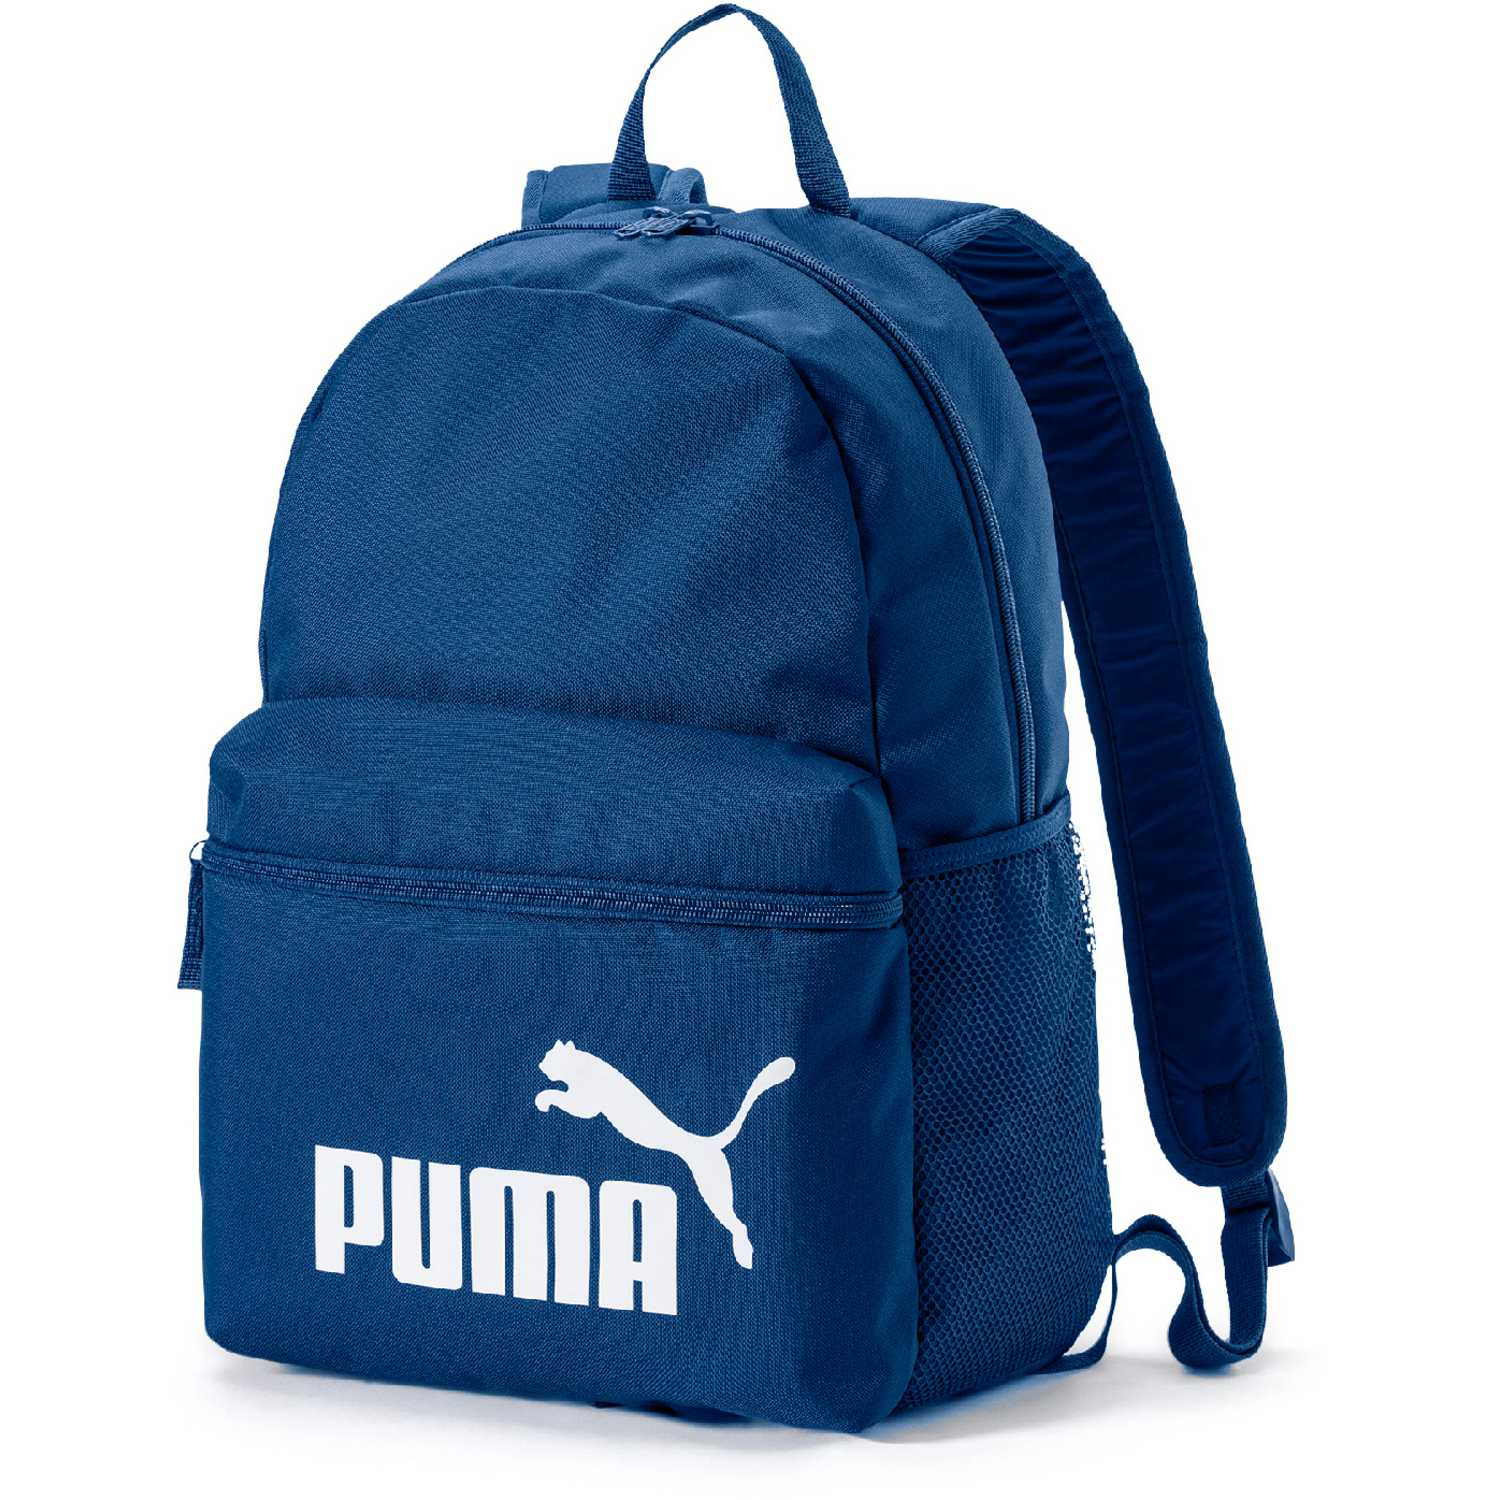 Puma Puma Phase Backpack Azul / blanco Mochilas multipropósitos